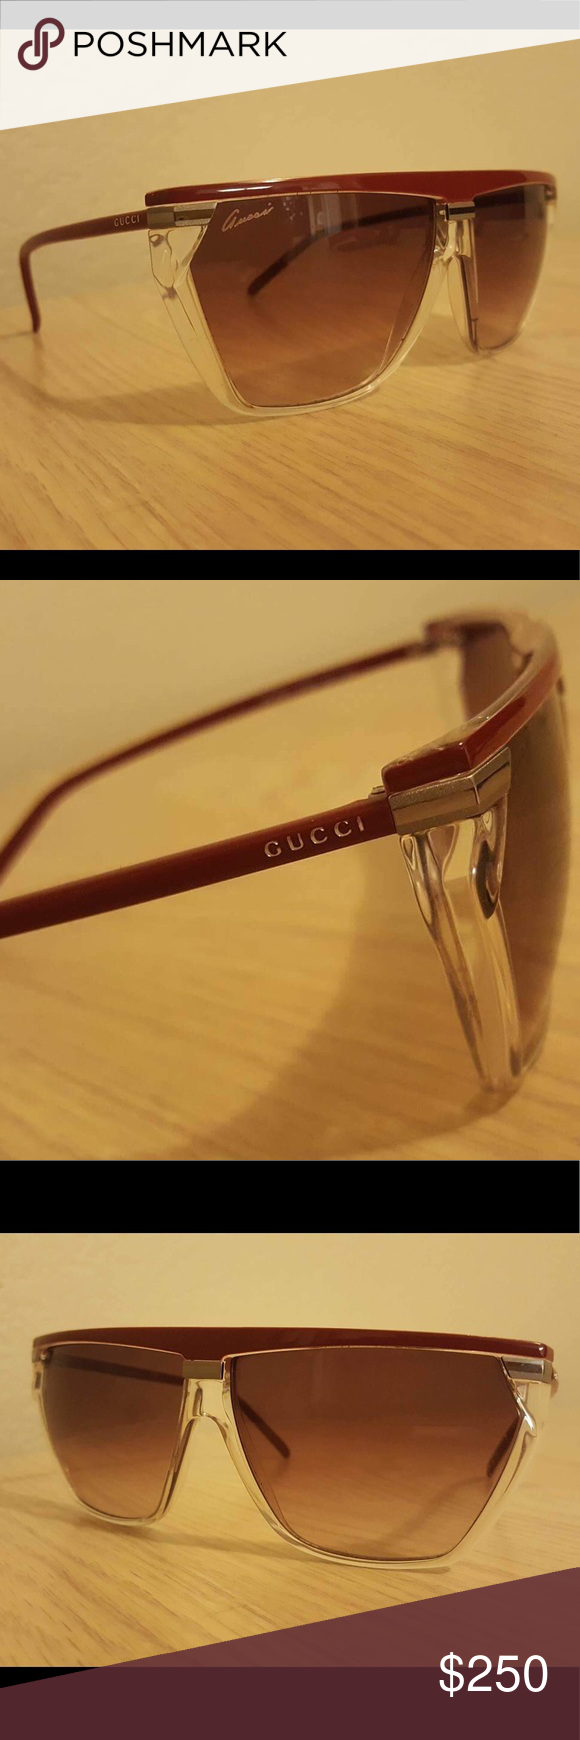 6d515ddf40e Authentic GUCCI Red + Crystal Sunglasses